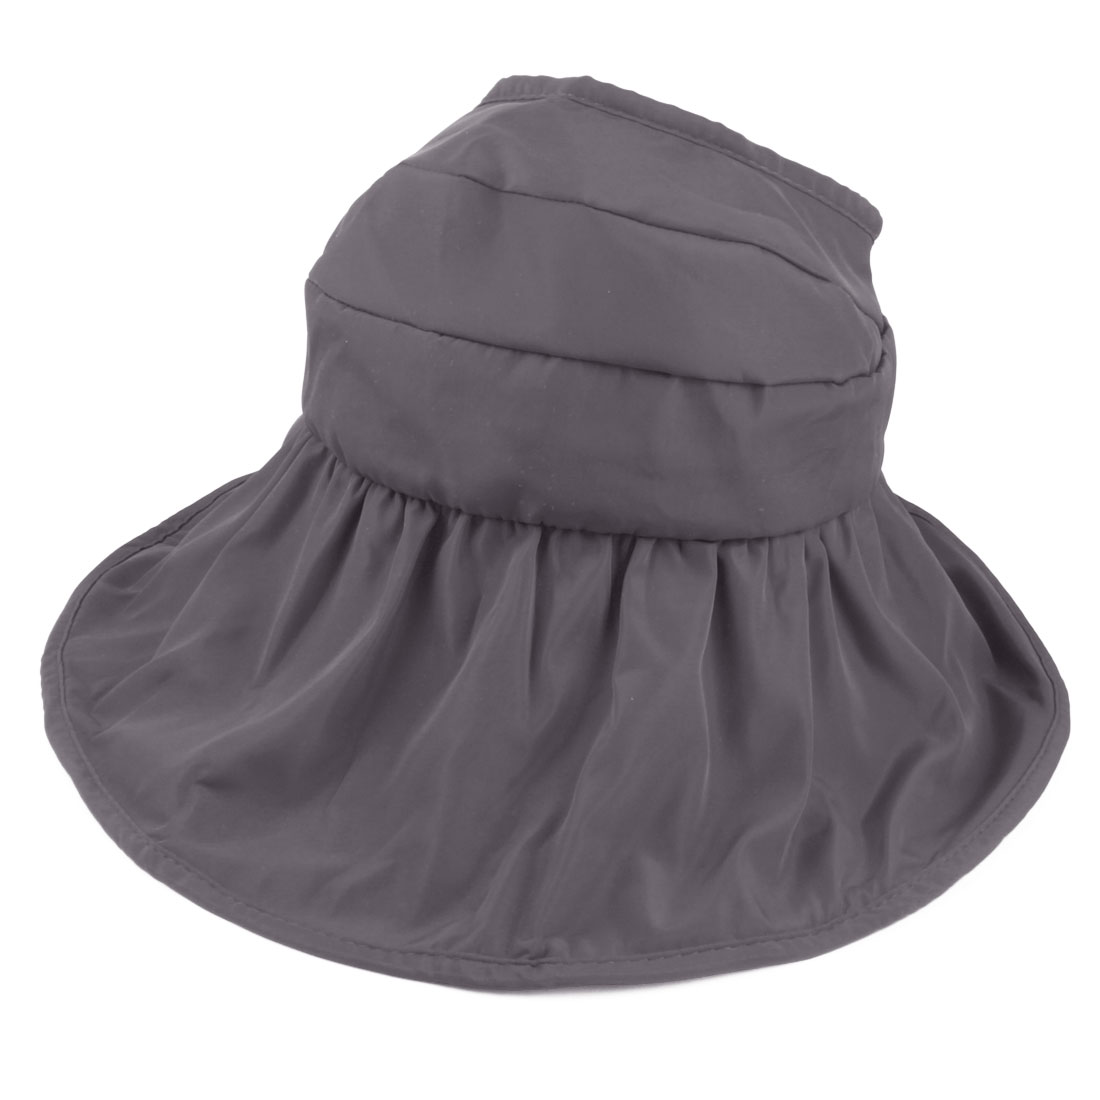 Woman Lady Summer Outdoor Holiday Wide Floppy Brim Foldable Visor Cap Sun Hat Gray